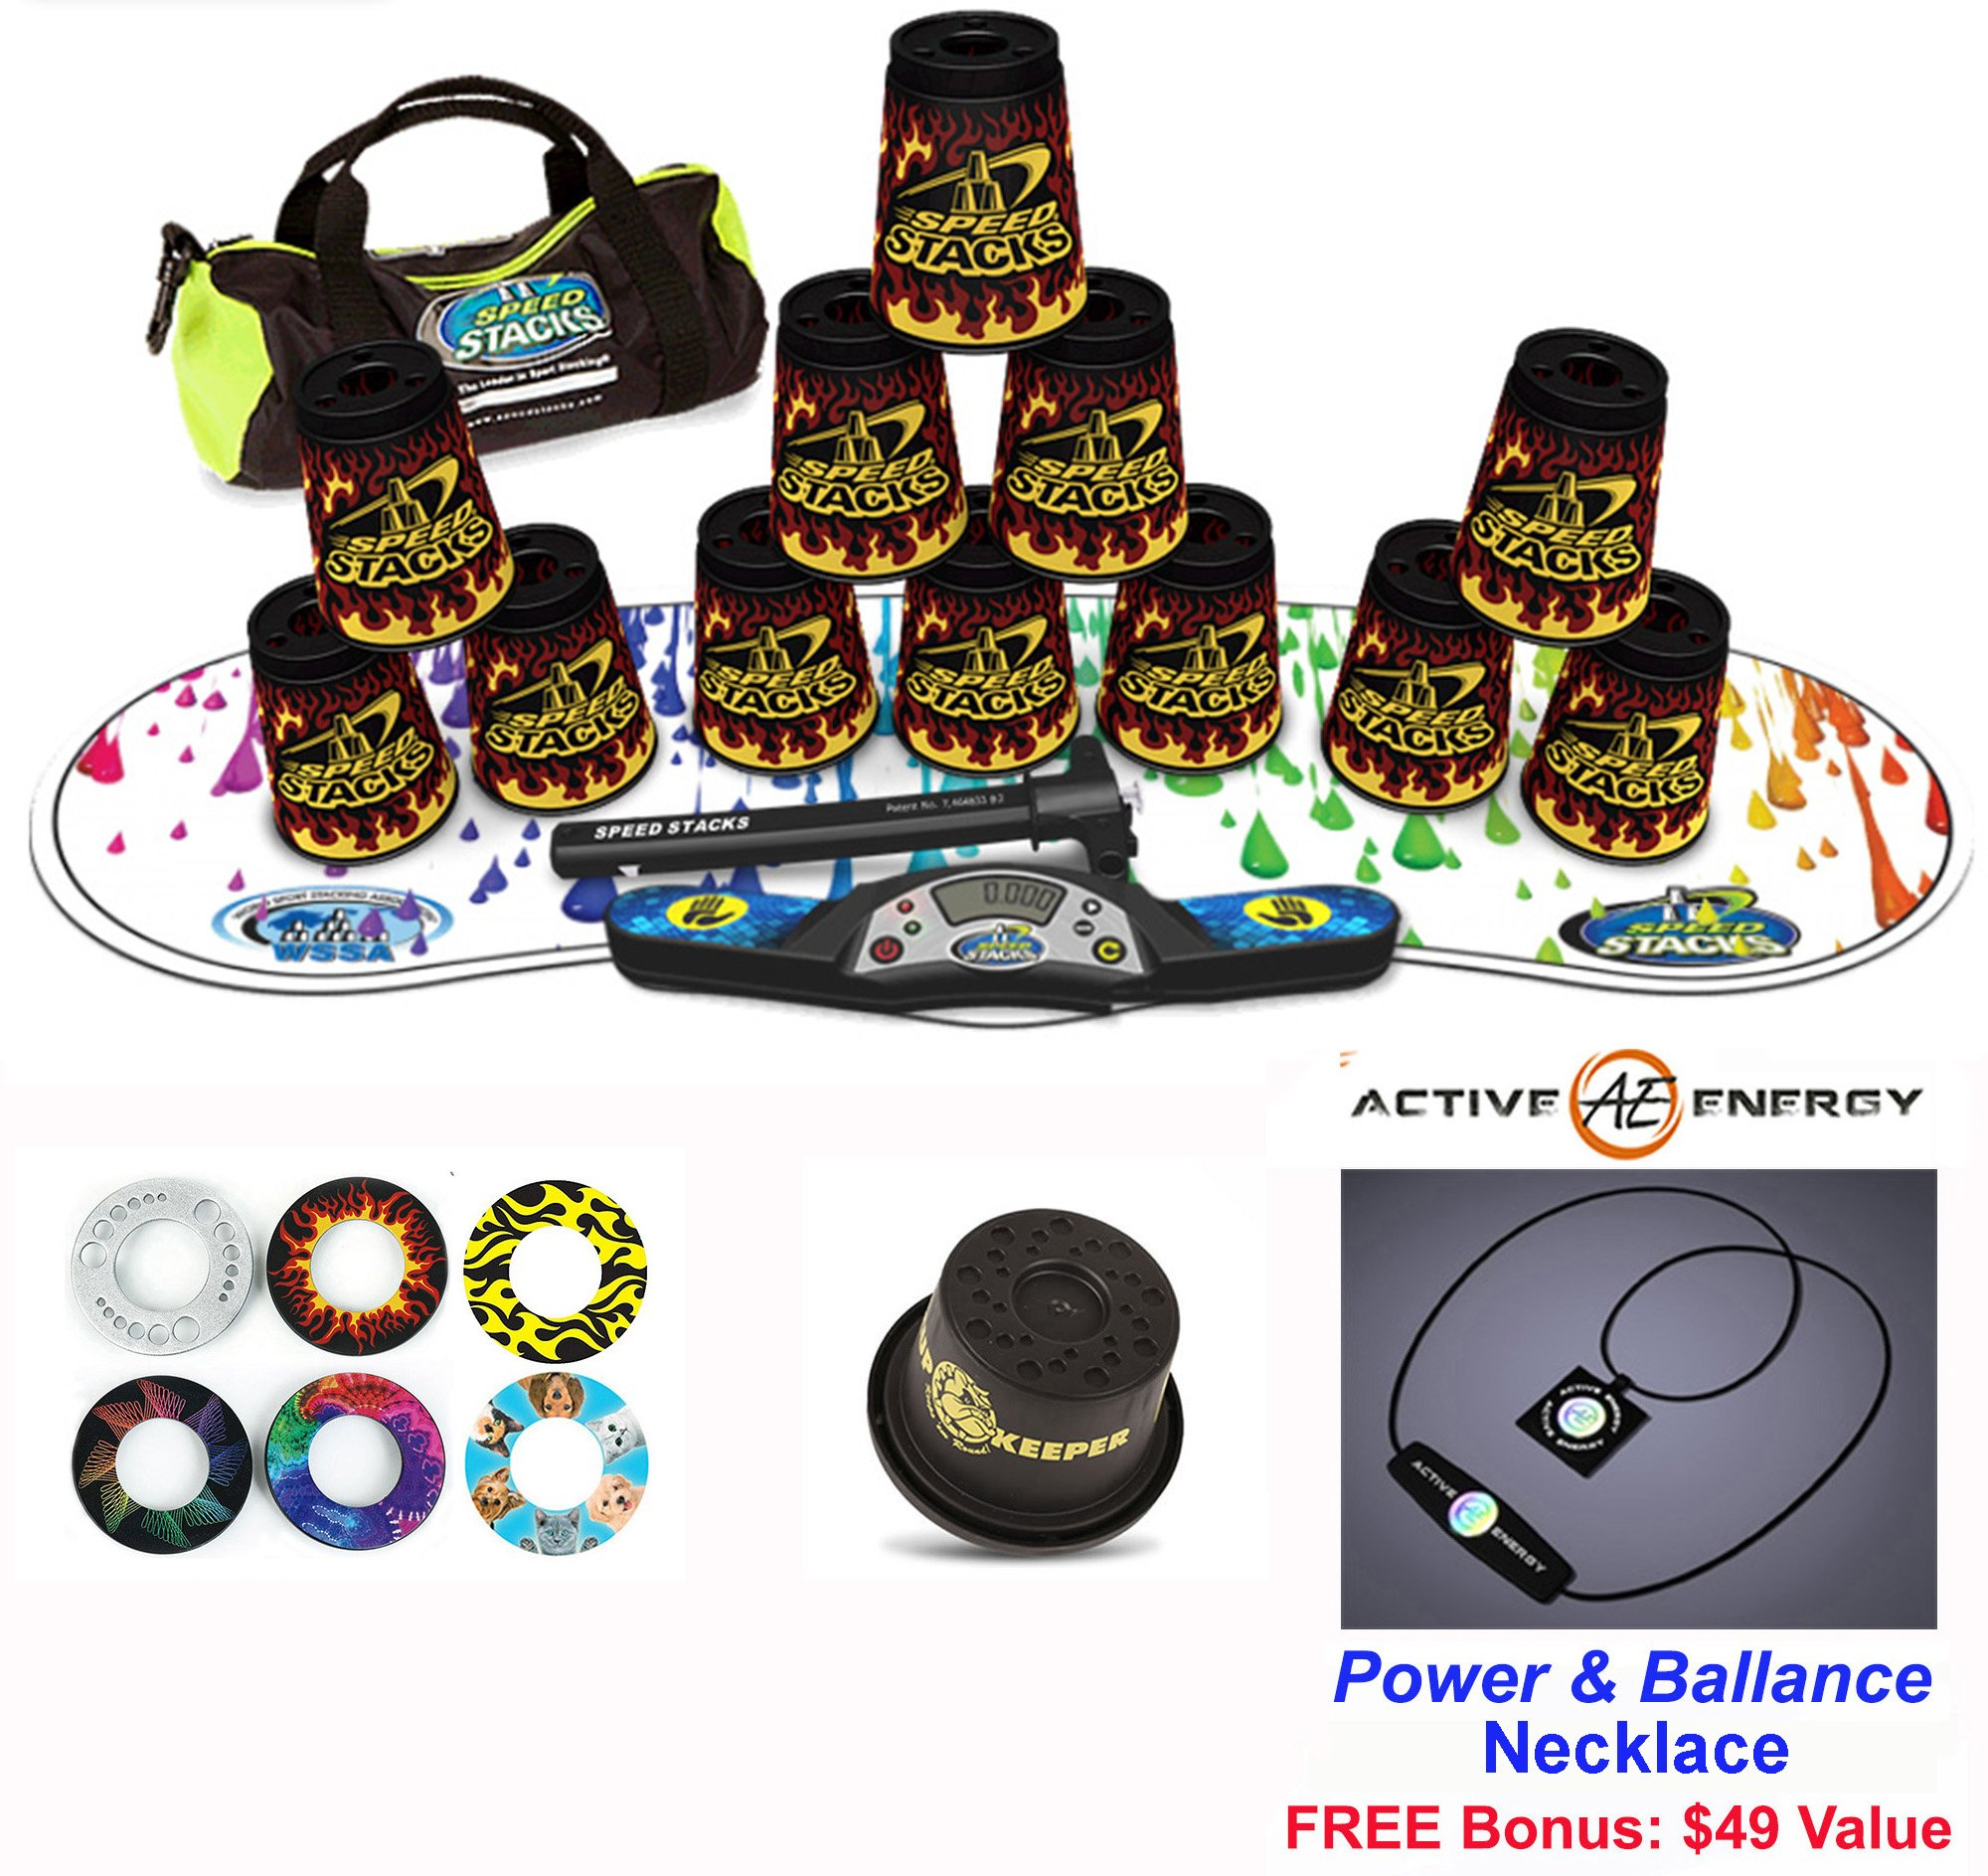 Speed Stacks Combo Set ''The Works'': 12 BLACK FLAME 4'' Cups, RAINBOW DROP Gen 3 Mat, G4 Pro Timer, Cup Keeper, Stem, Gear Bag + Active Energy Necklace by Speed Stacks